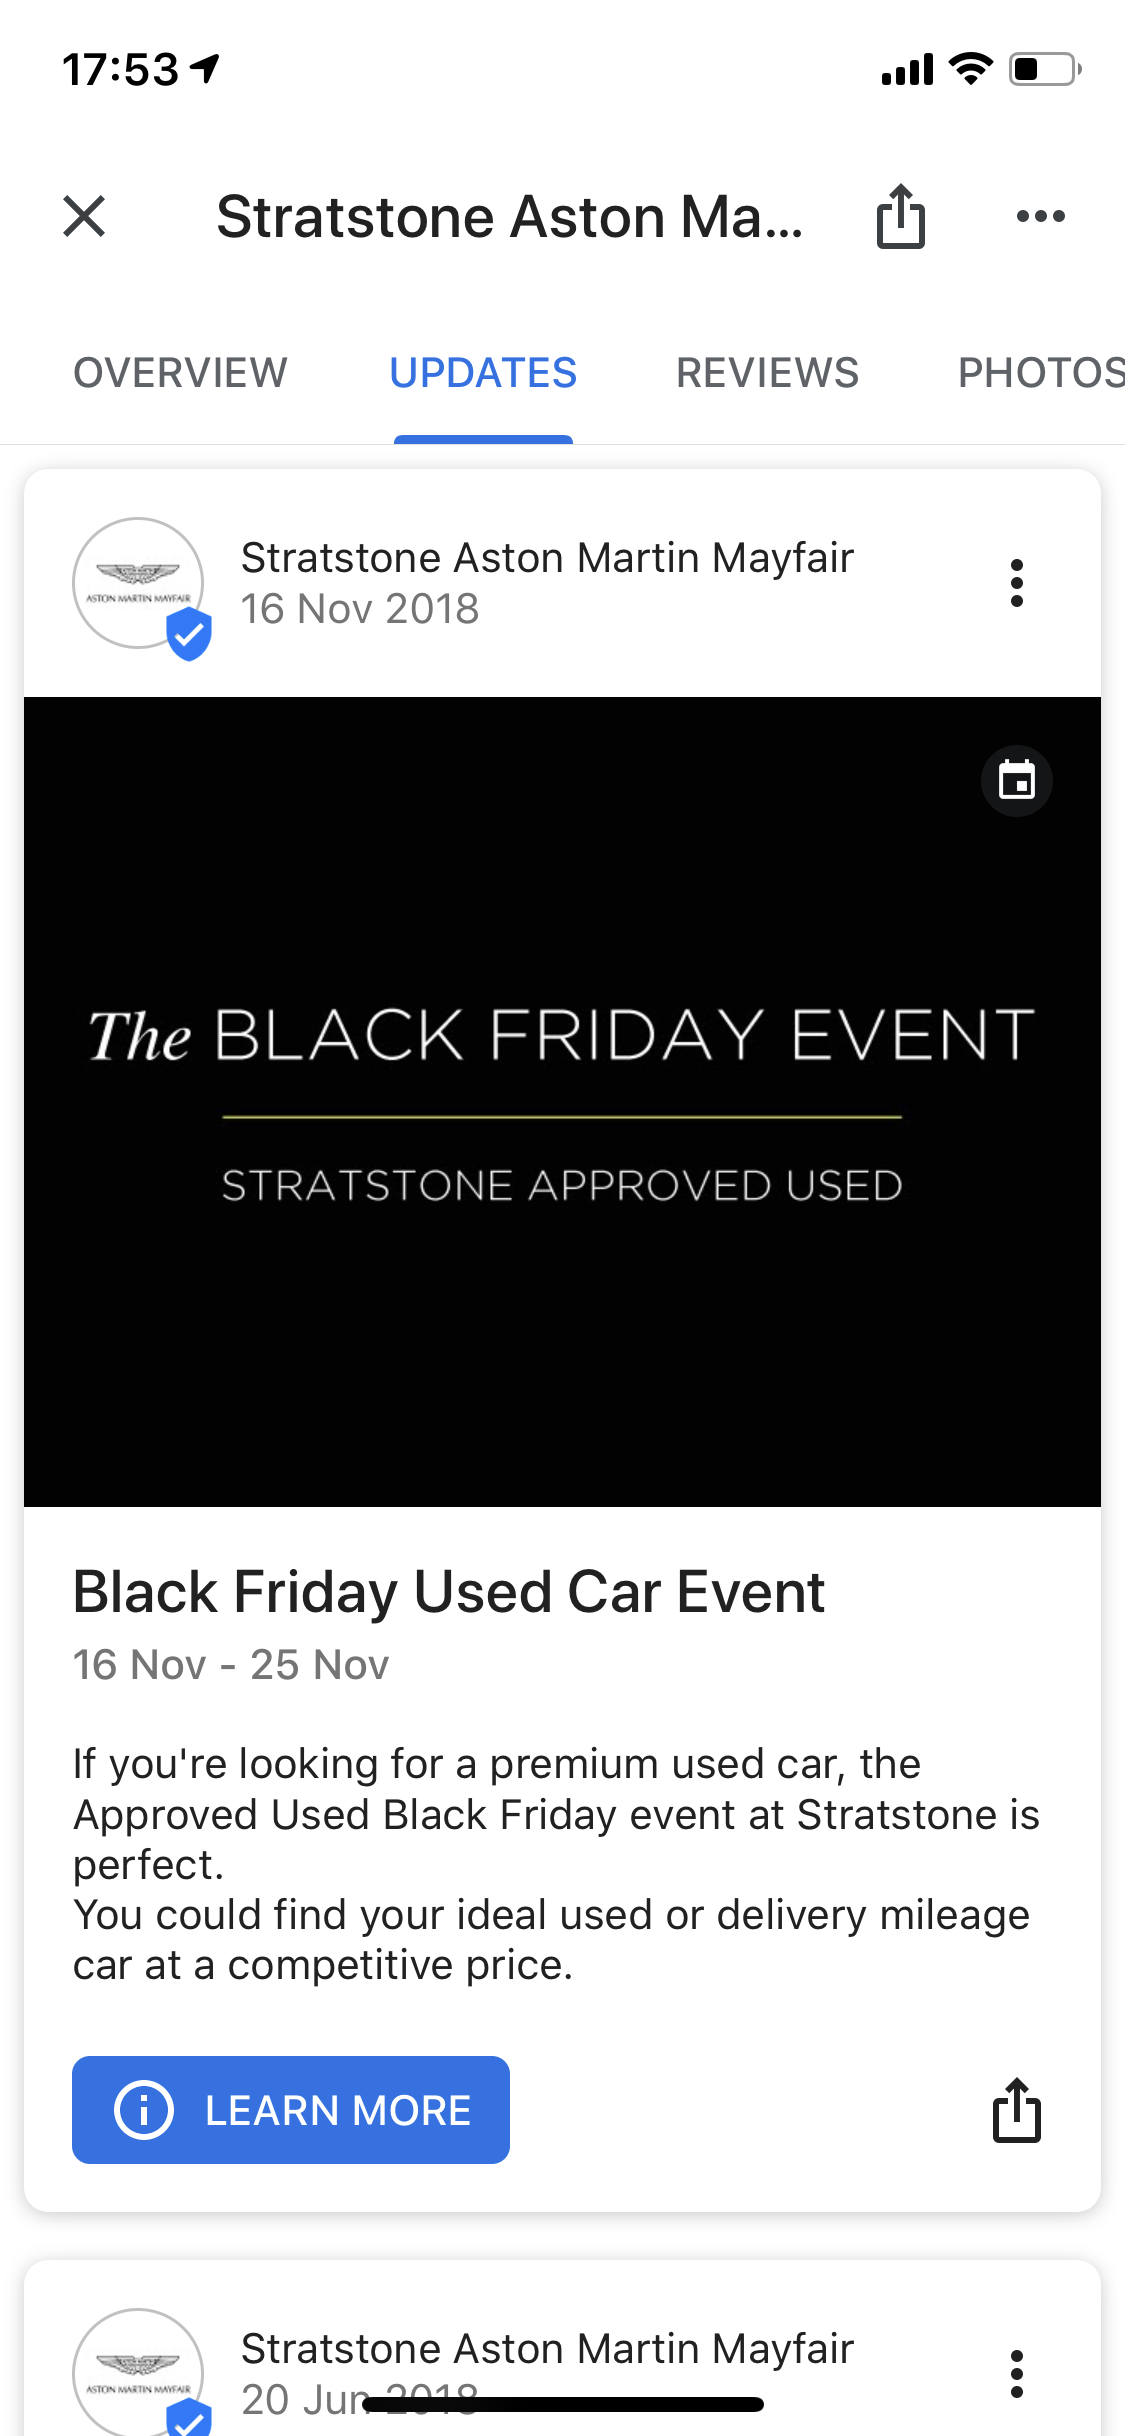 Stratstone Aston Martin Mayfair used Google My Business post to promote their Black Friday Used Car Event.